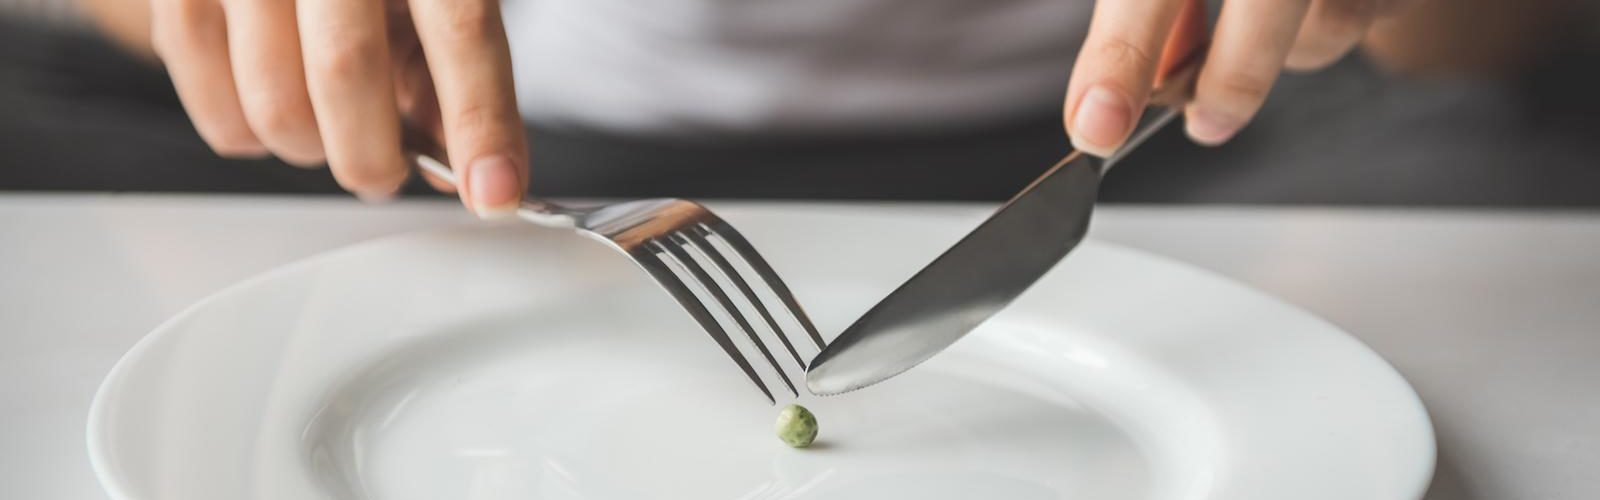 Eating Disorder Therapy: What are Bulimia, Anorexia